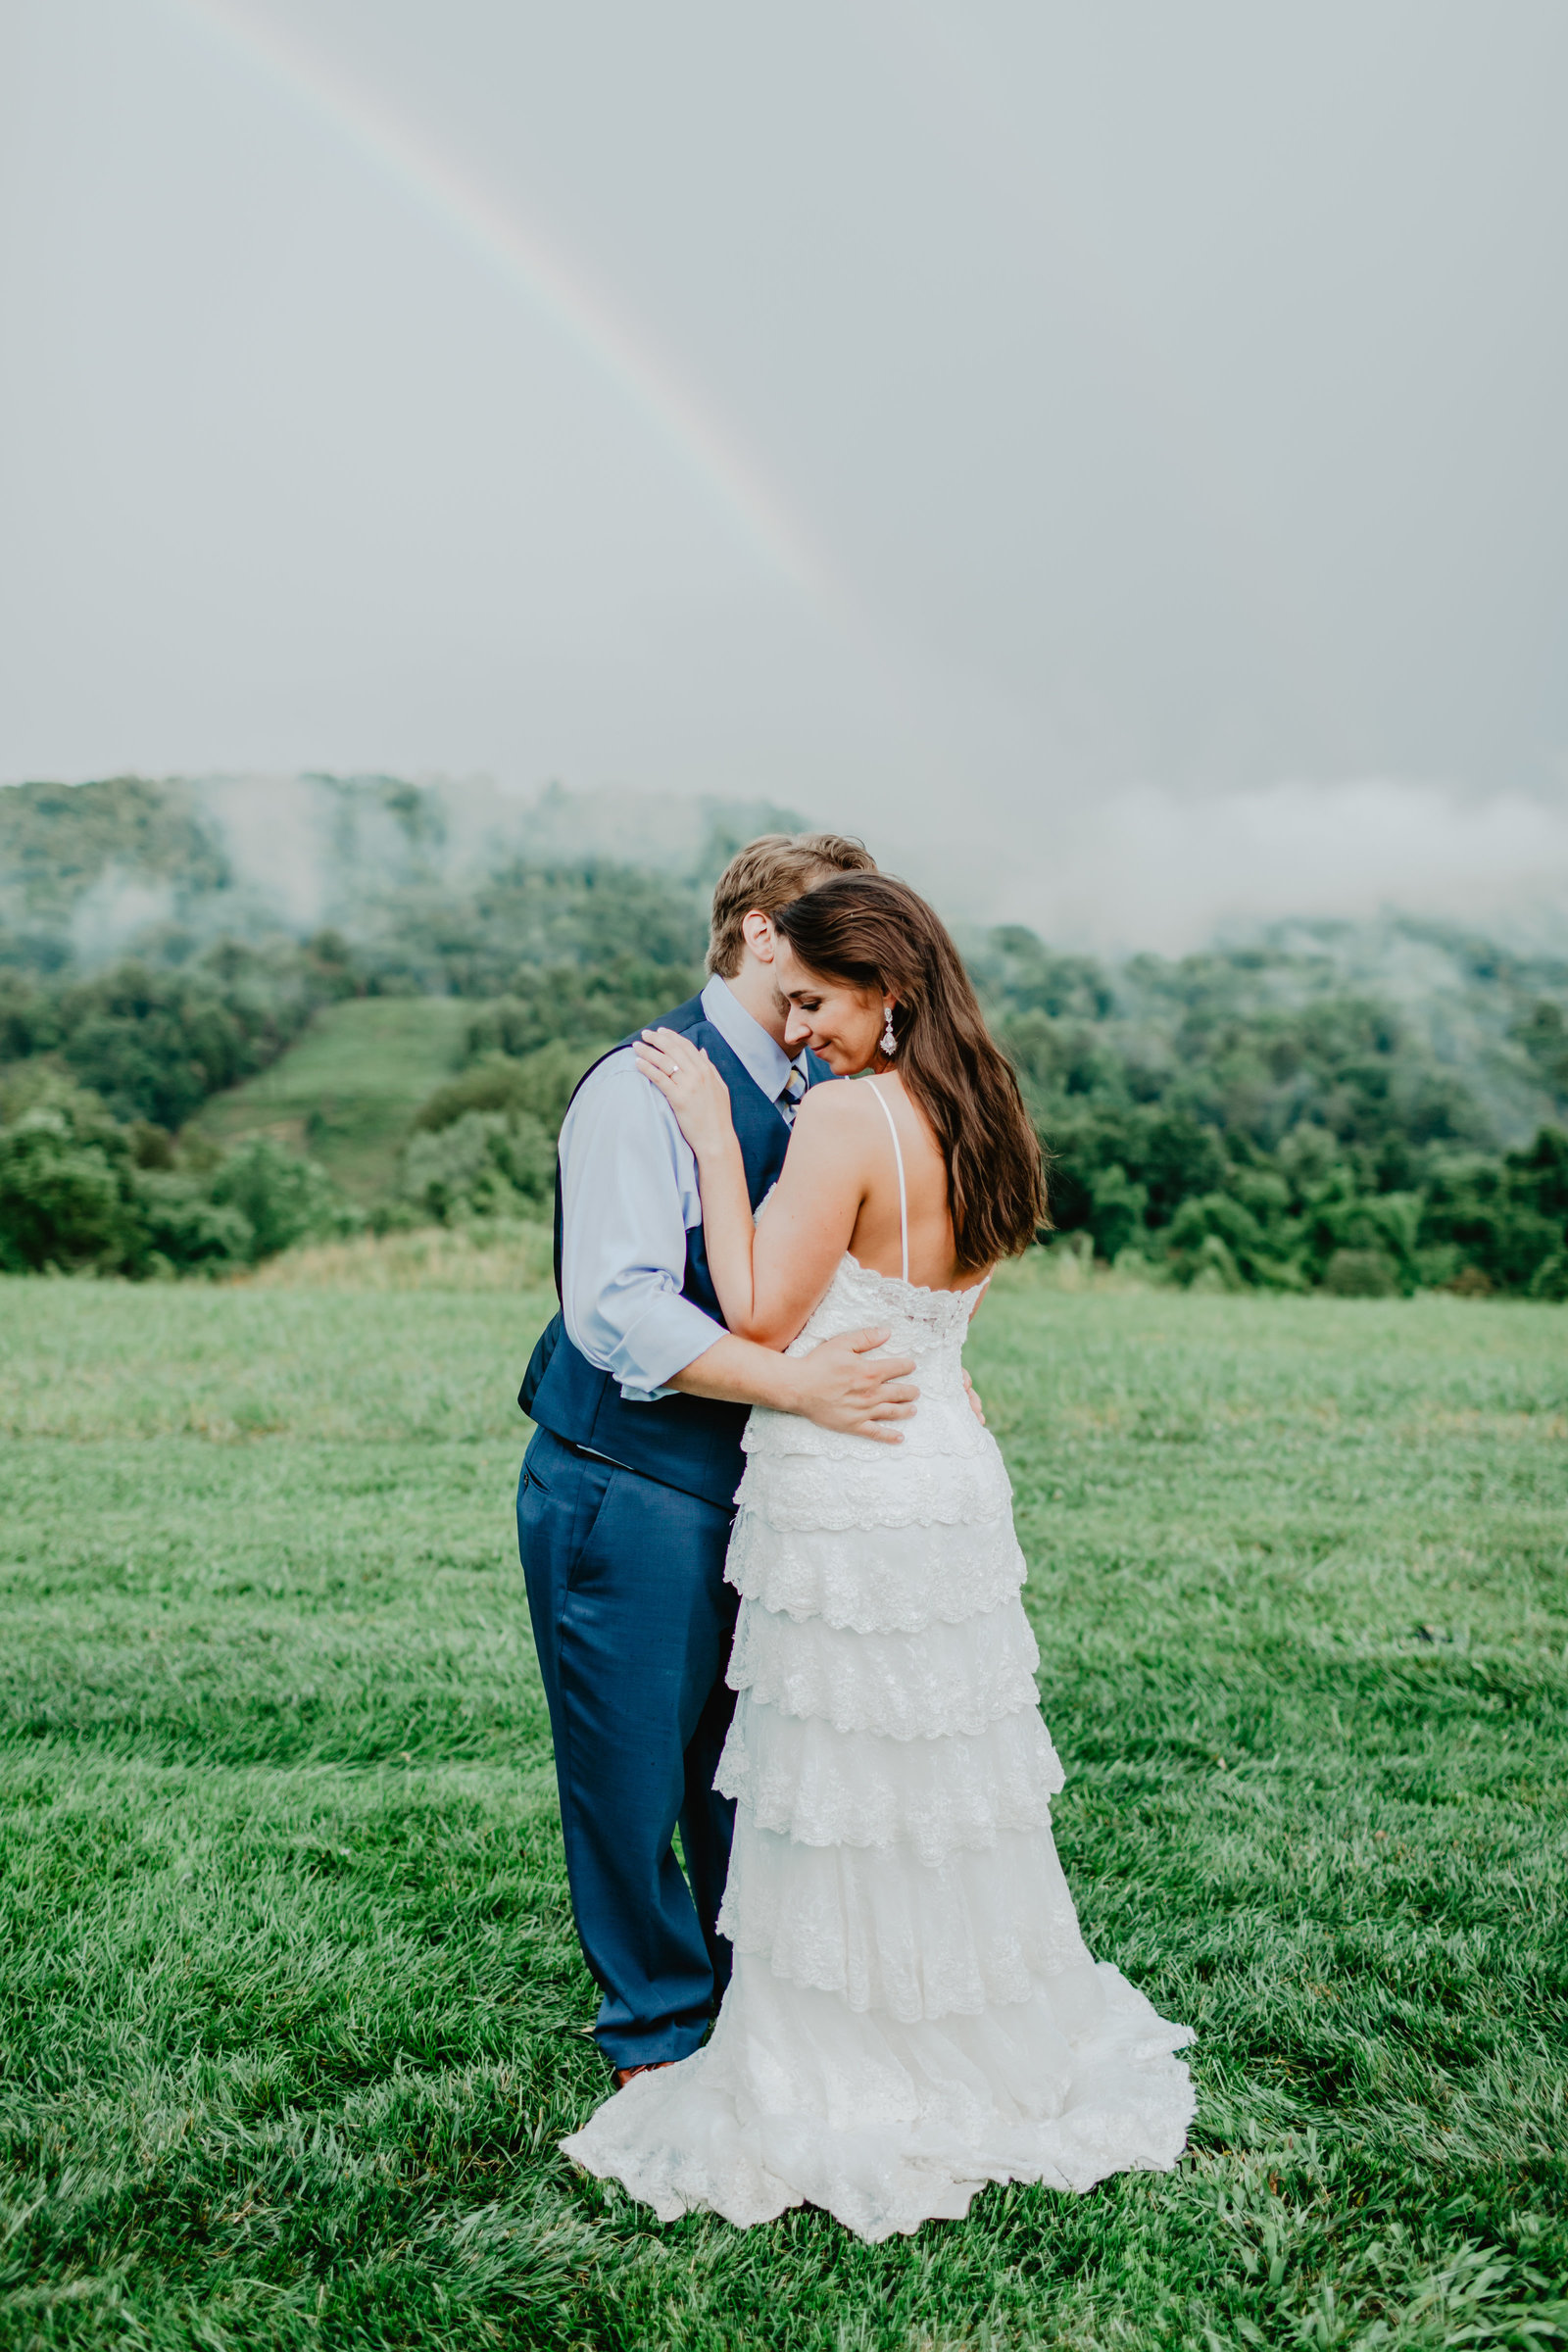 After the rain comes the most perfect fog and rainbow with Groom leaning down to whisper in his Brides ear at Chateau Silah